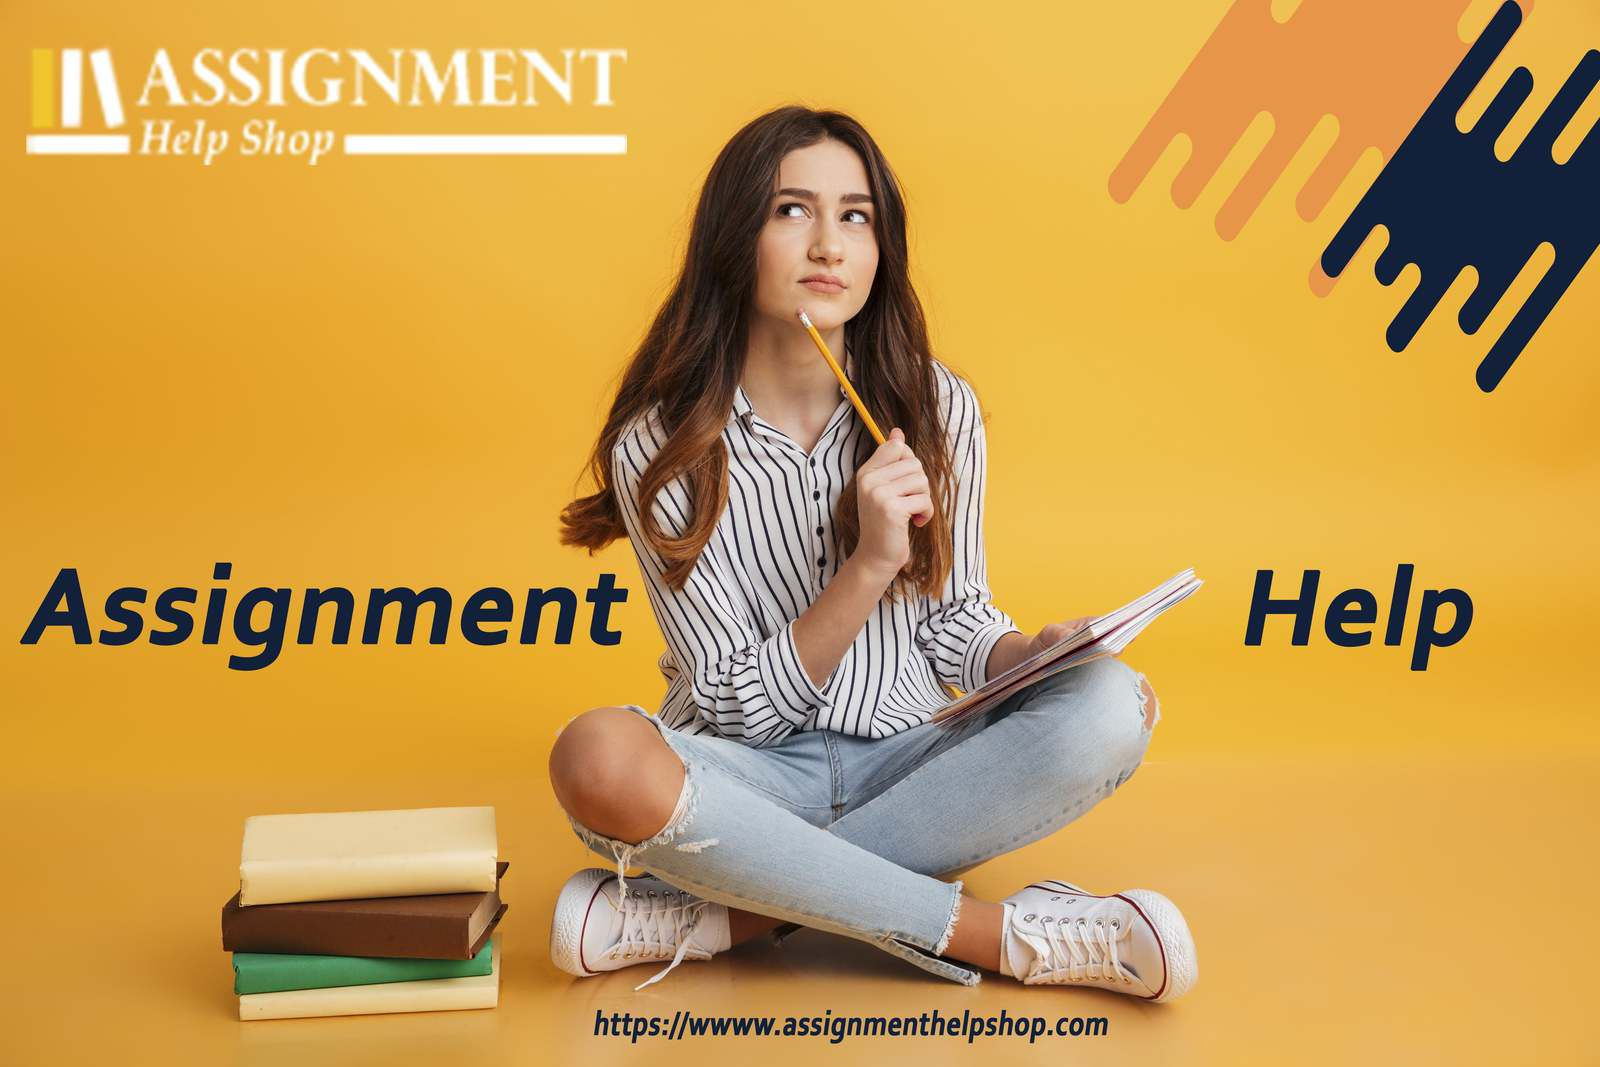 How students should write good assignments for better grades?